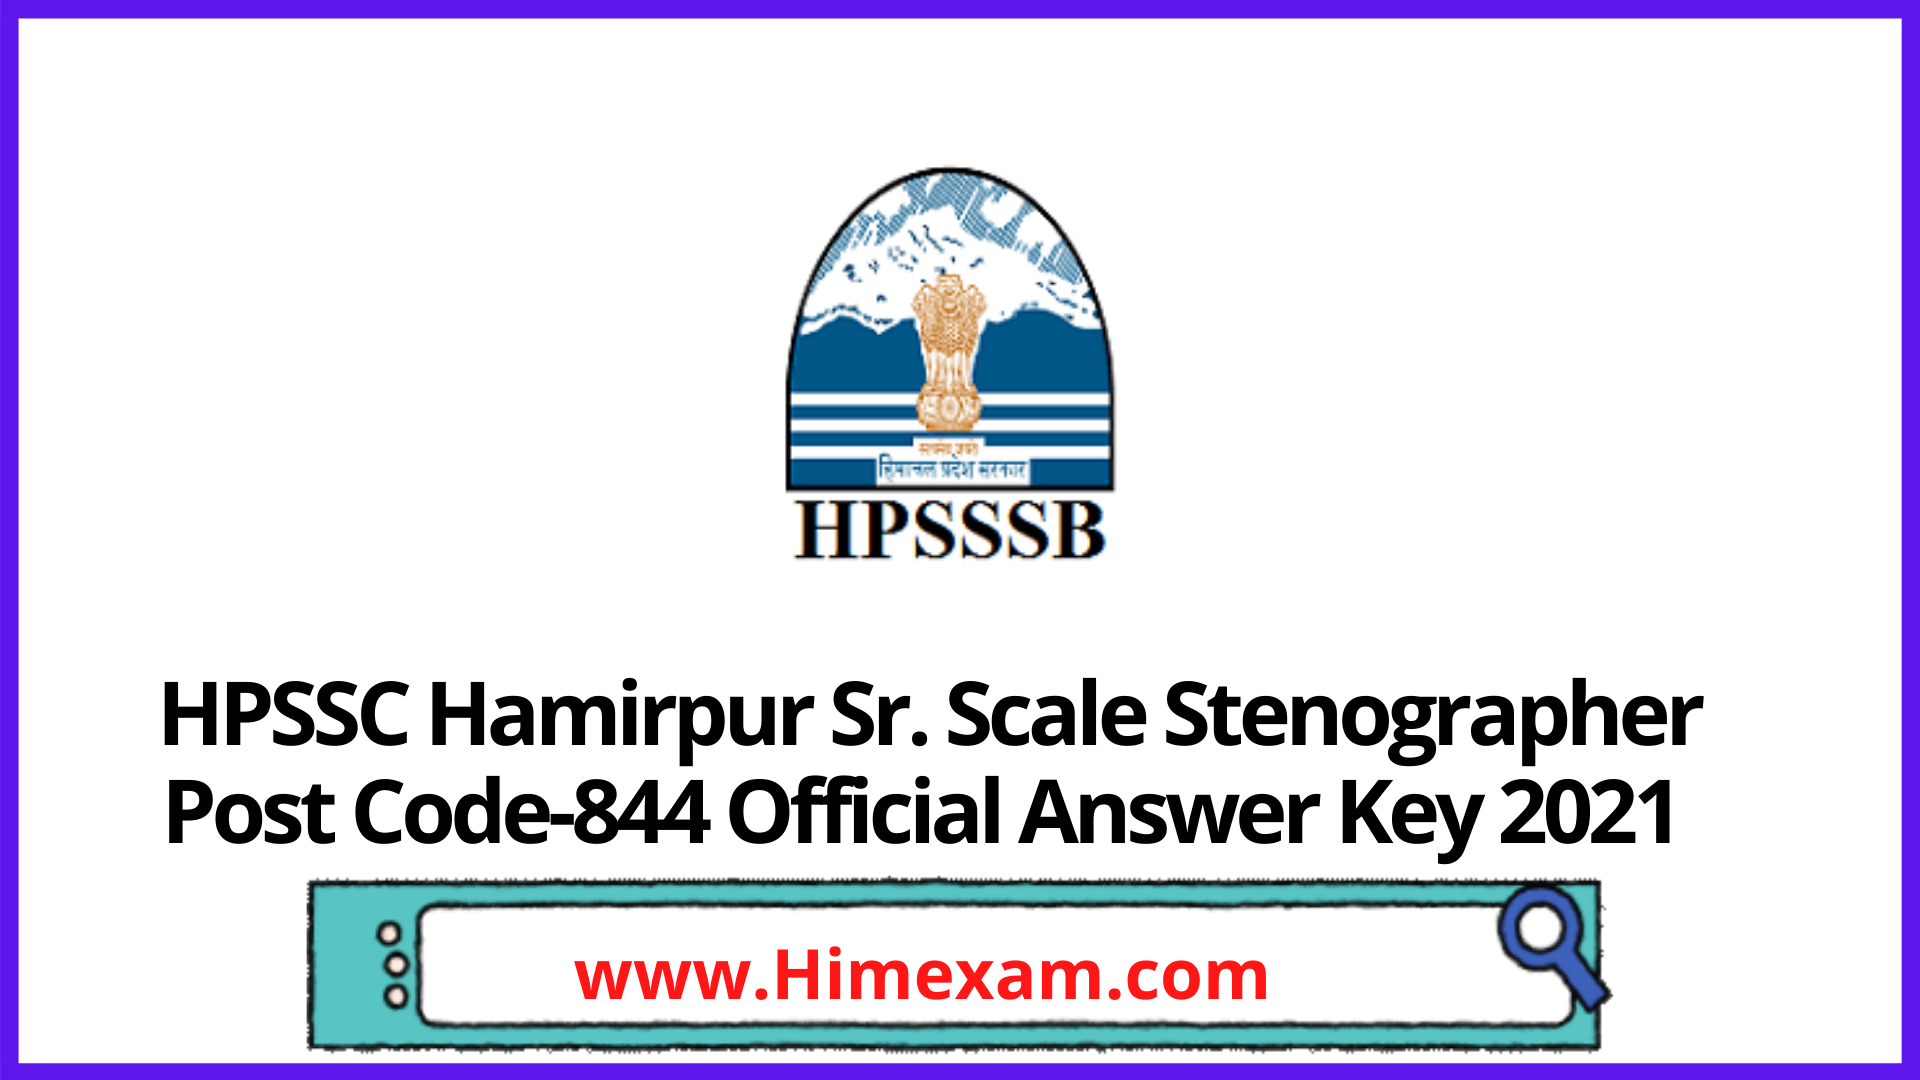 HPSSC Hamirpur Sr. Scale Stenographer Post Code-844 Official Answer Key 2021